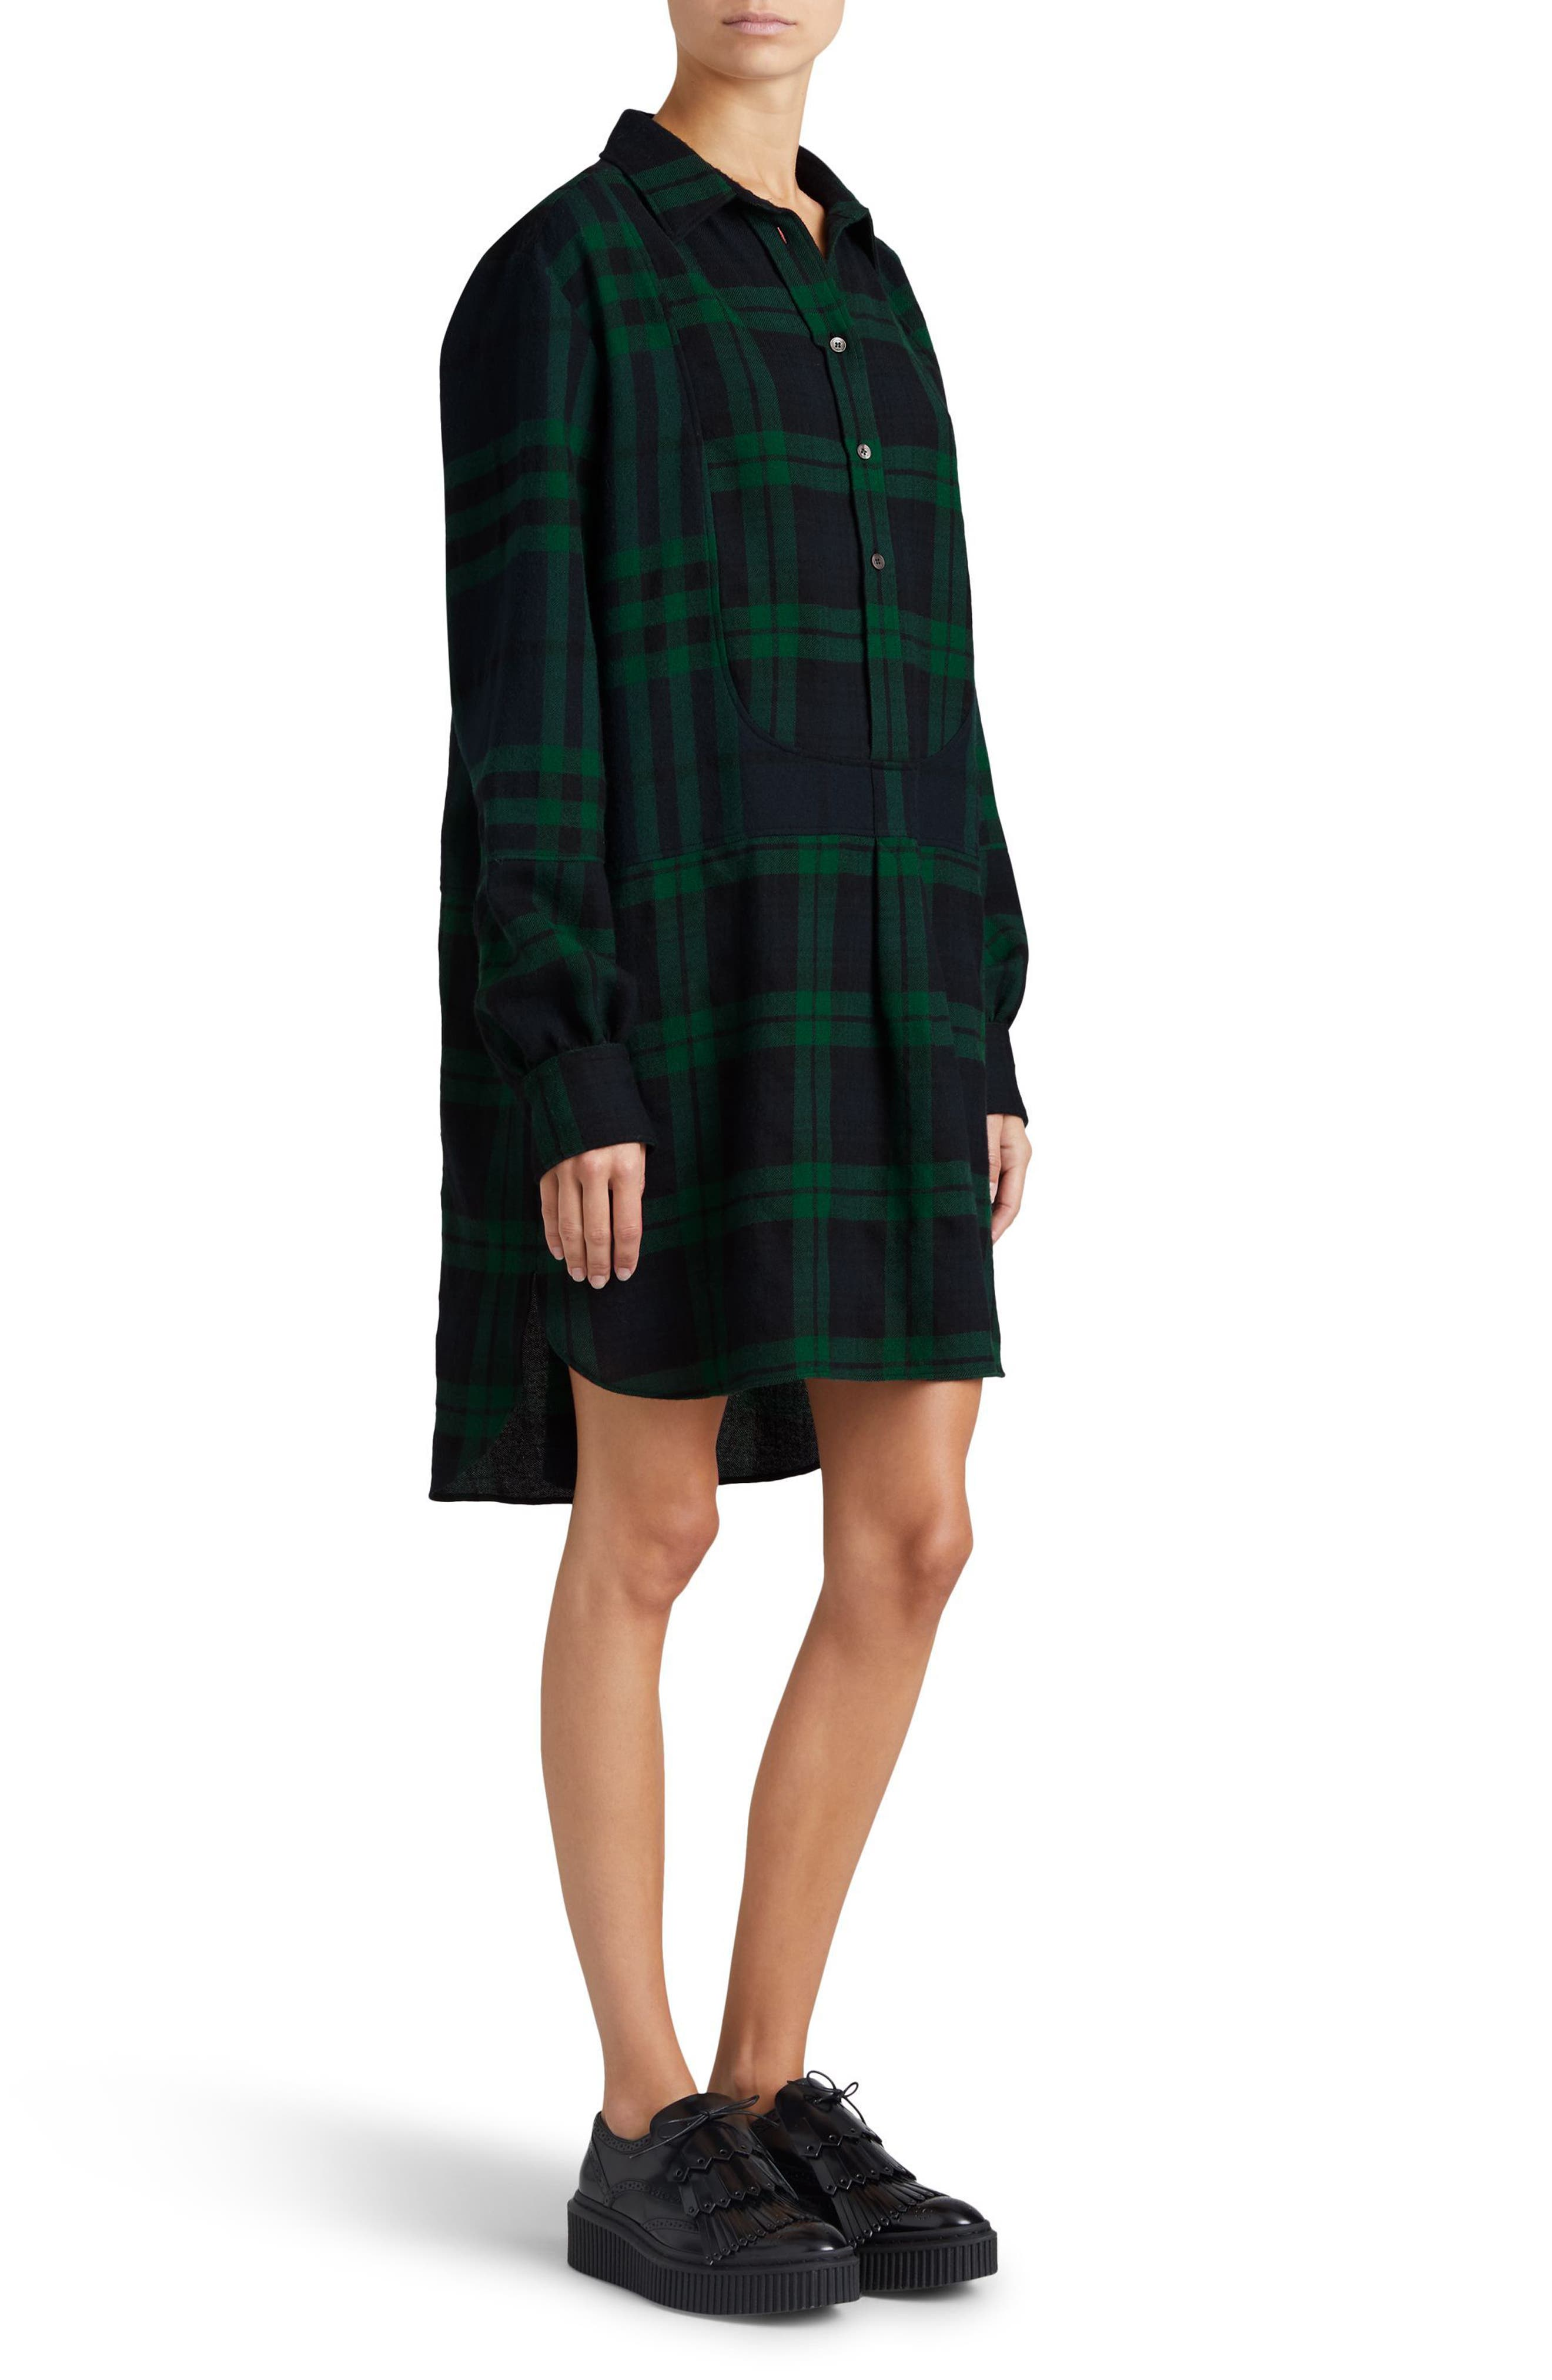 BURBERRY,                             Kylie Check Wool Shirtdress,                             Alternate thumbnail 3, color,                             410